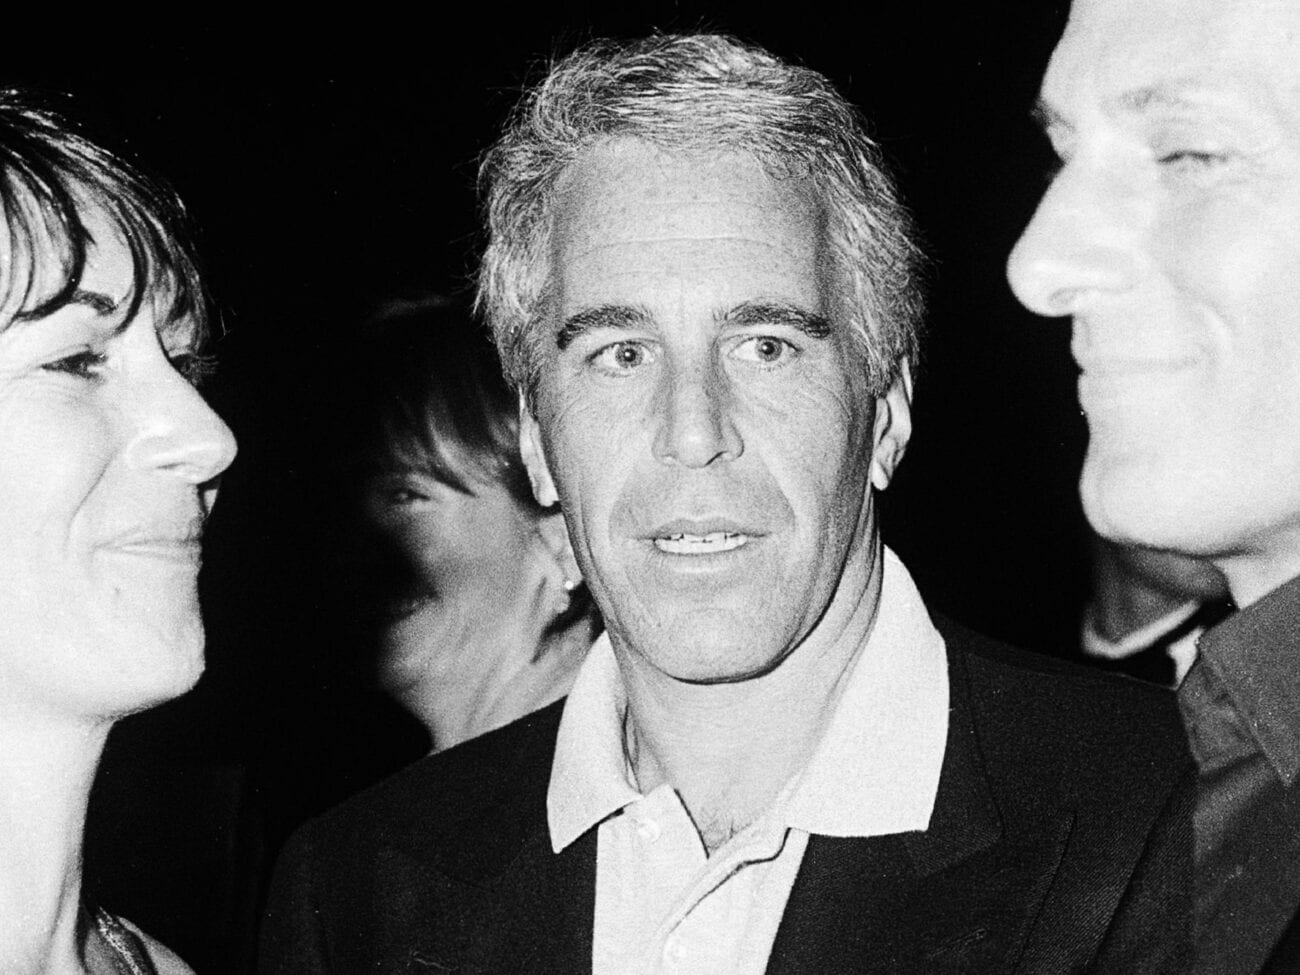 The scope & breadth of Jeffrey Epstein's sexual abuse horrors have sunken to new depths. Did Epstein force young victims into marriages?